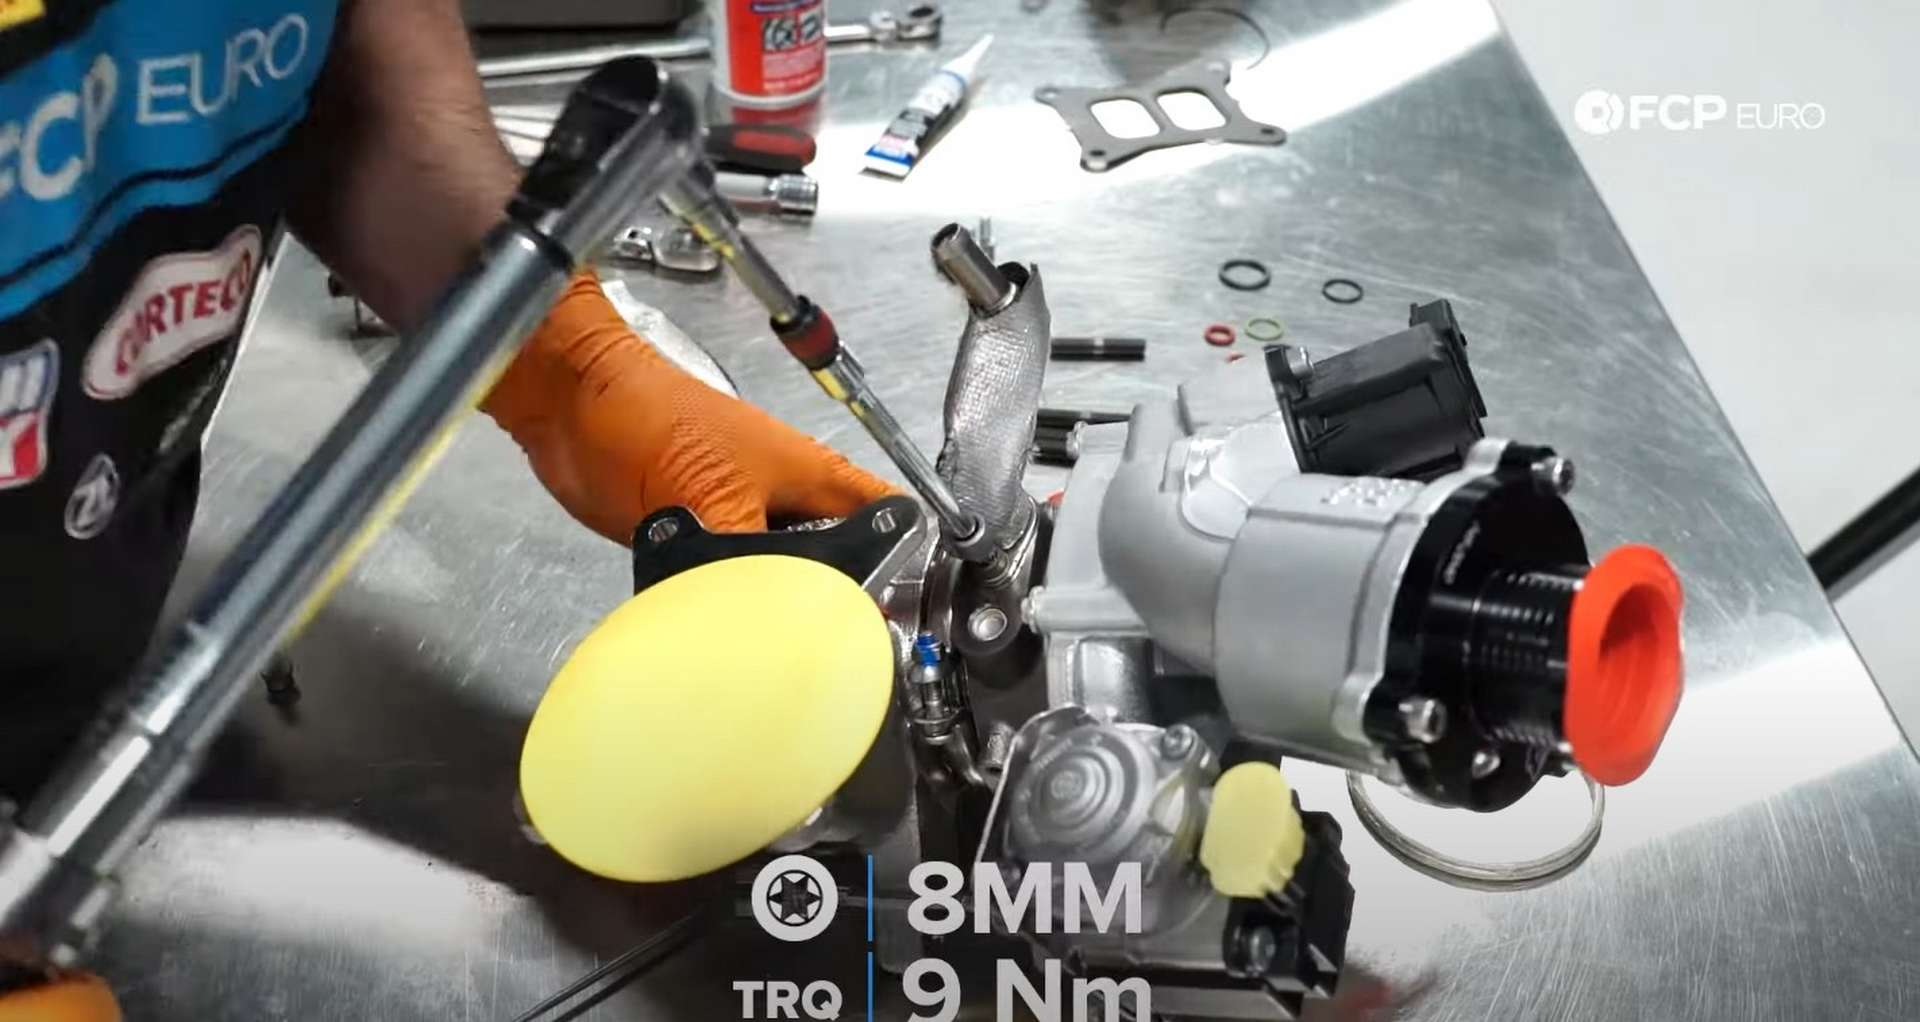 DIY MK7 VW GTI Turbocharger Upgrade torquing the fitting's bolts